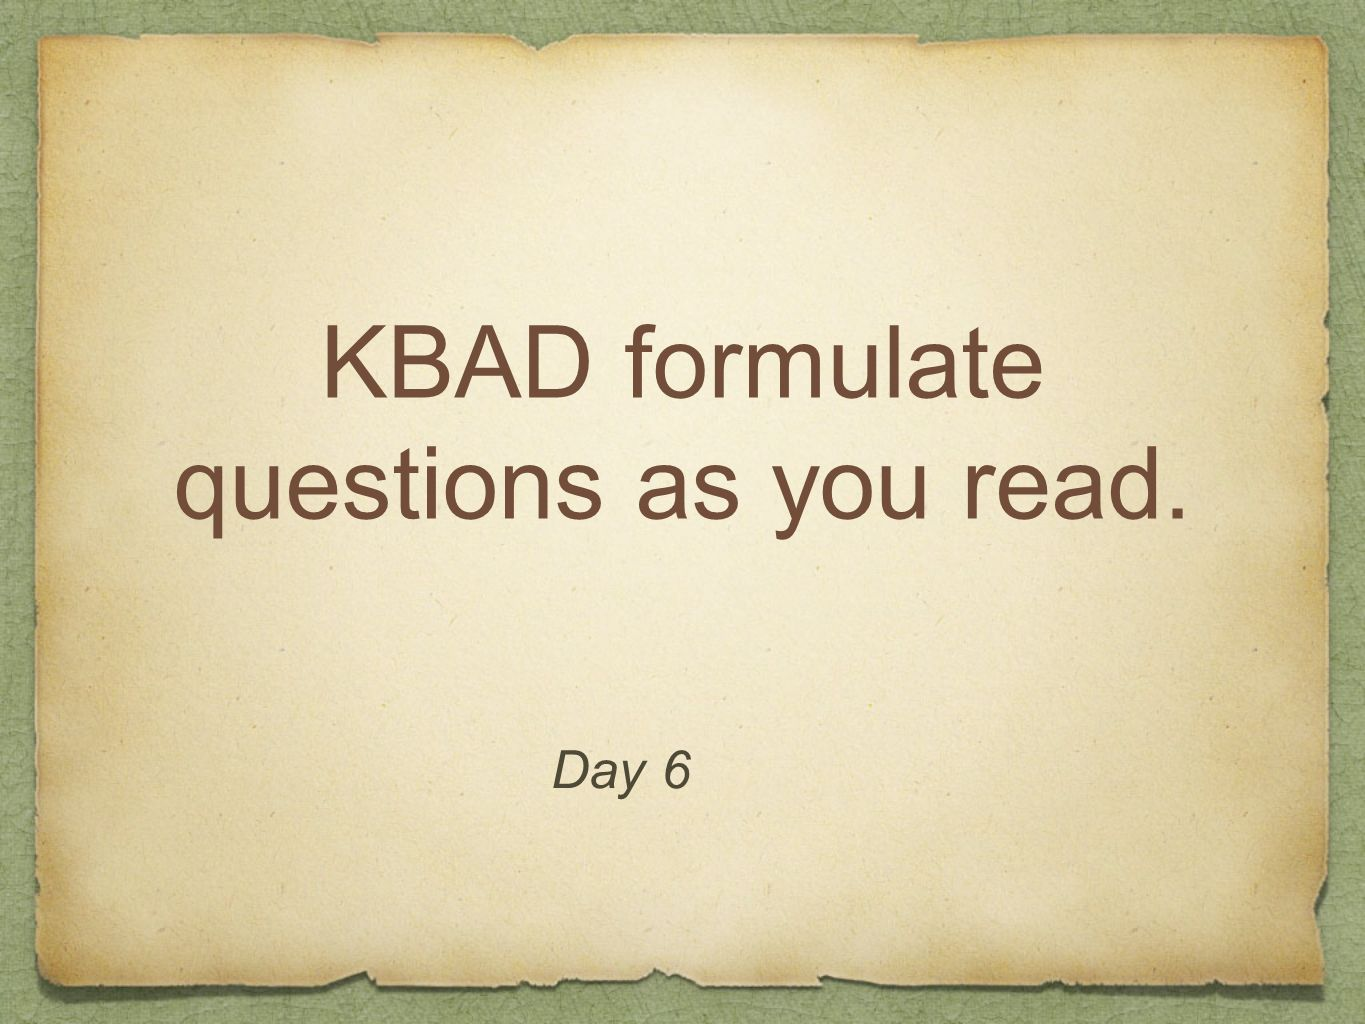 KBAD formulate questions as you read.